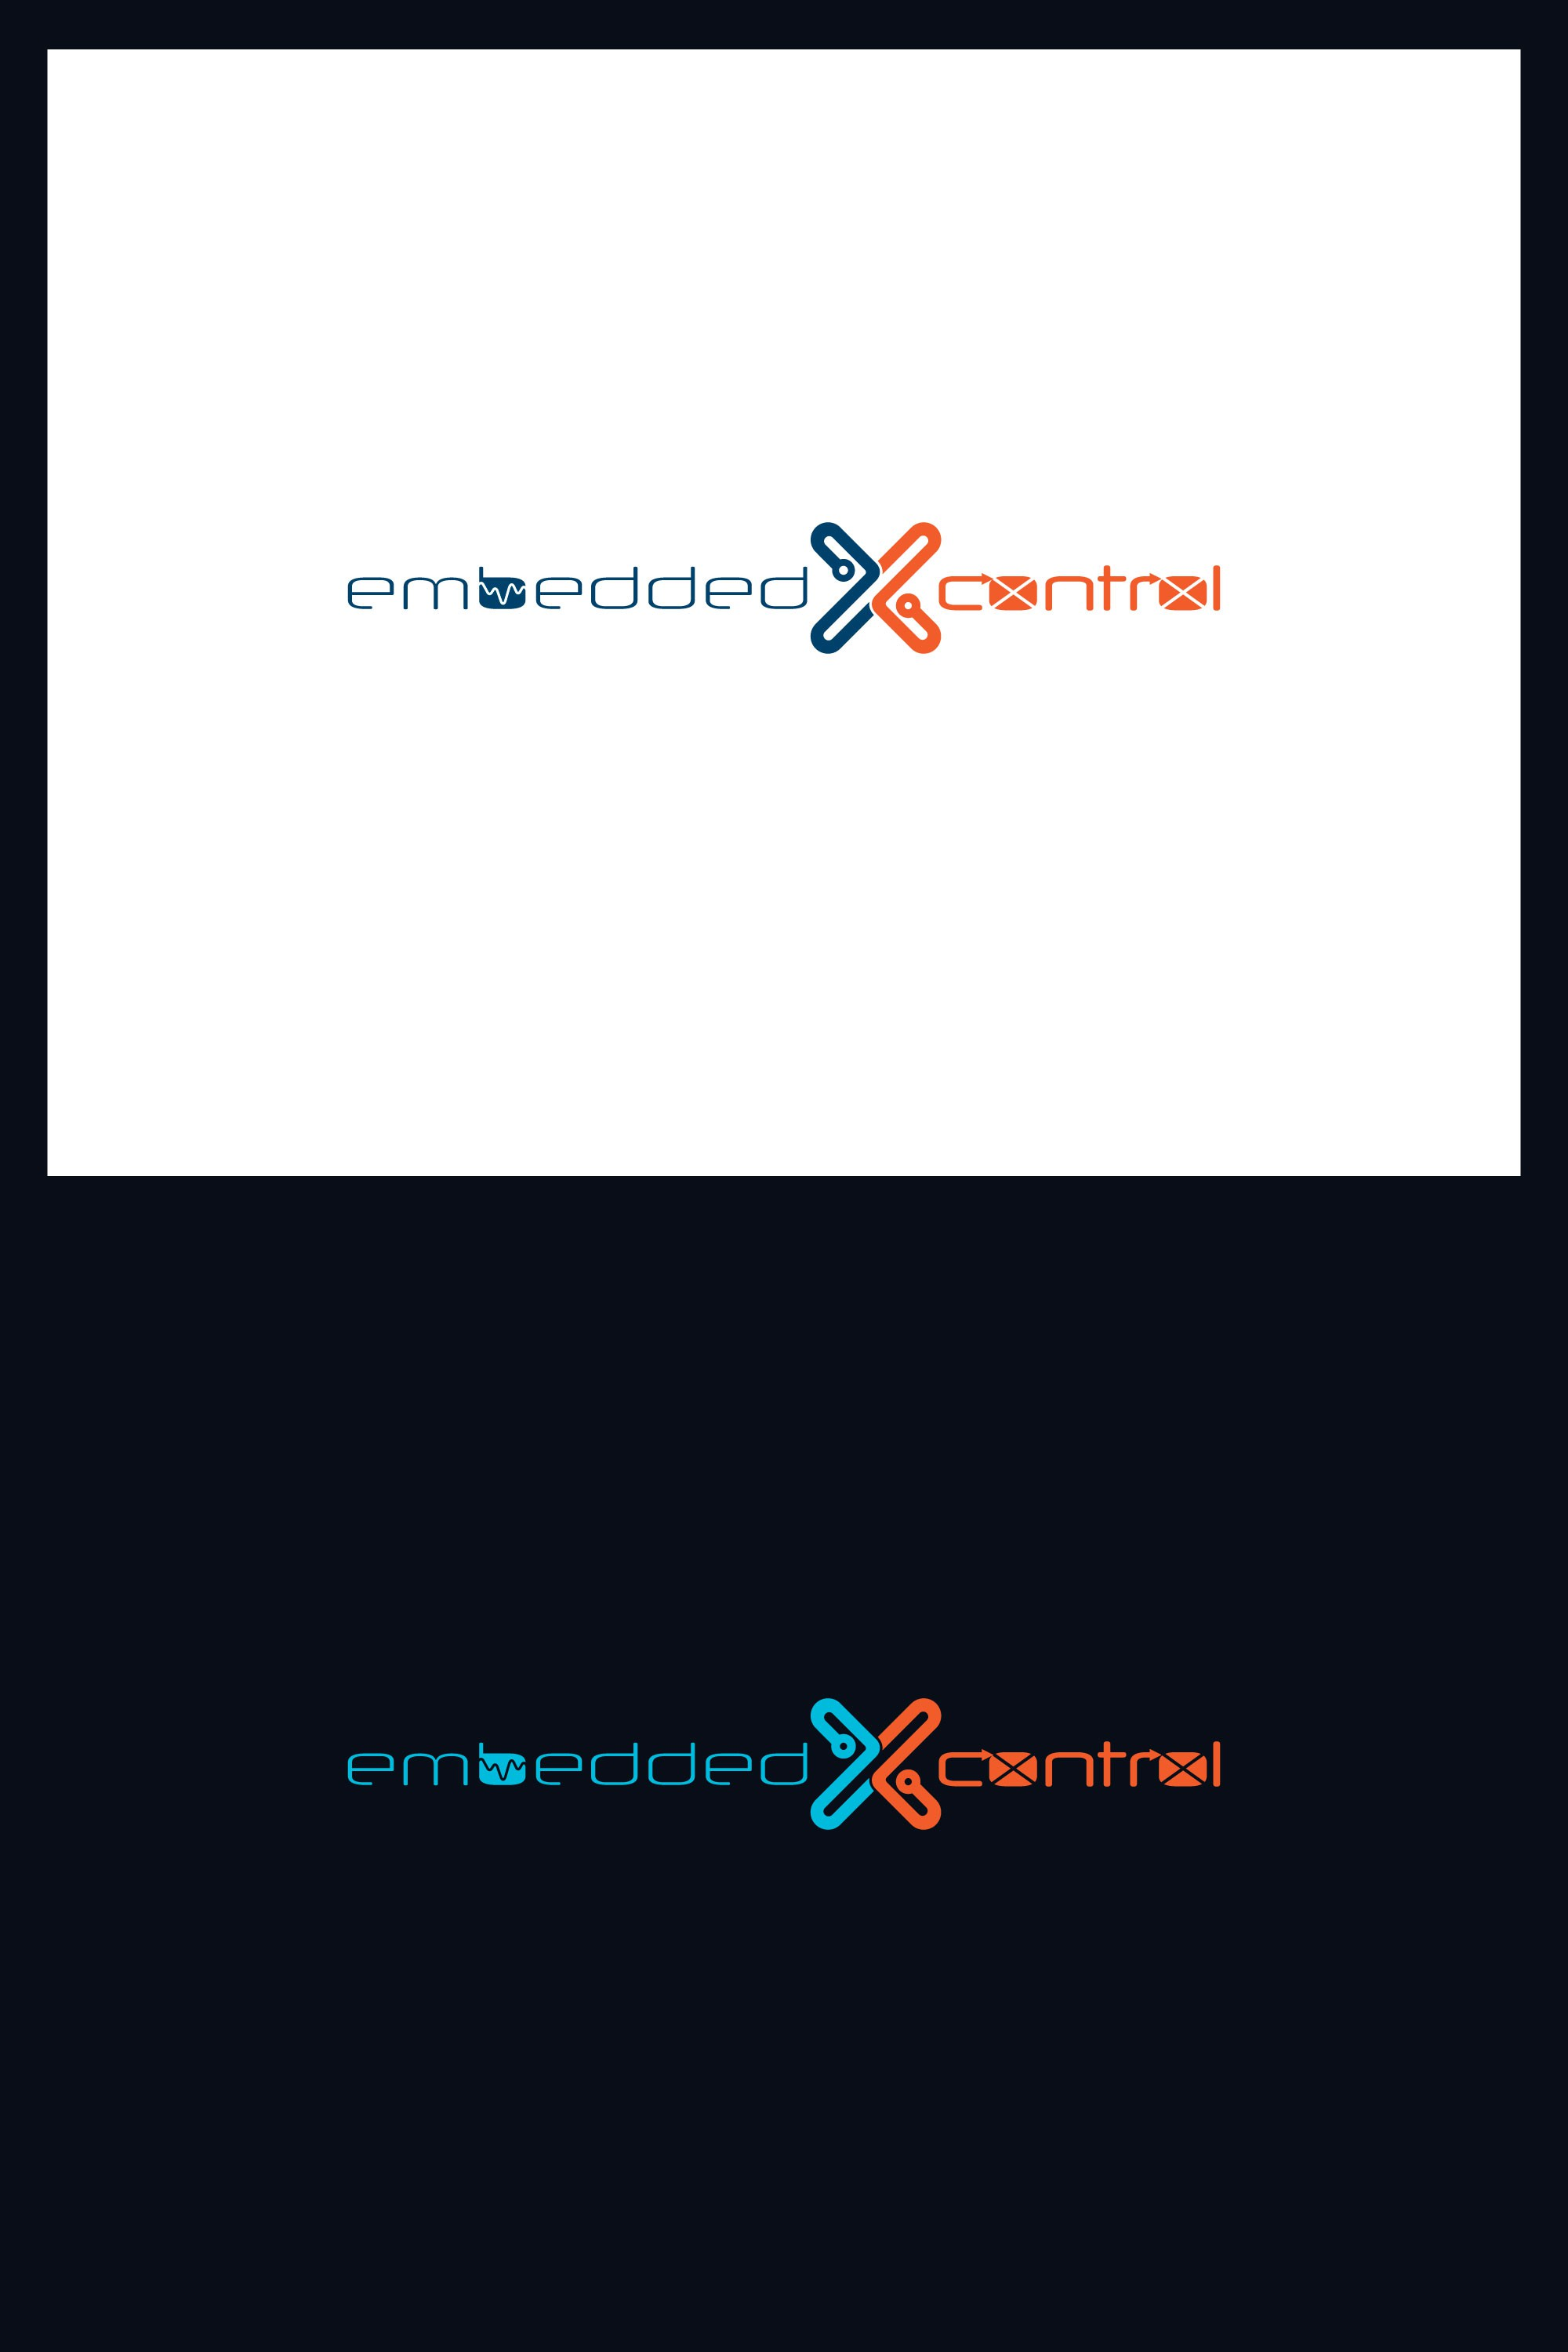 """Create a """"science cool"""" logo for the technology website embeddedXcontrol"""